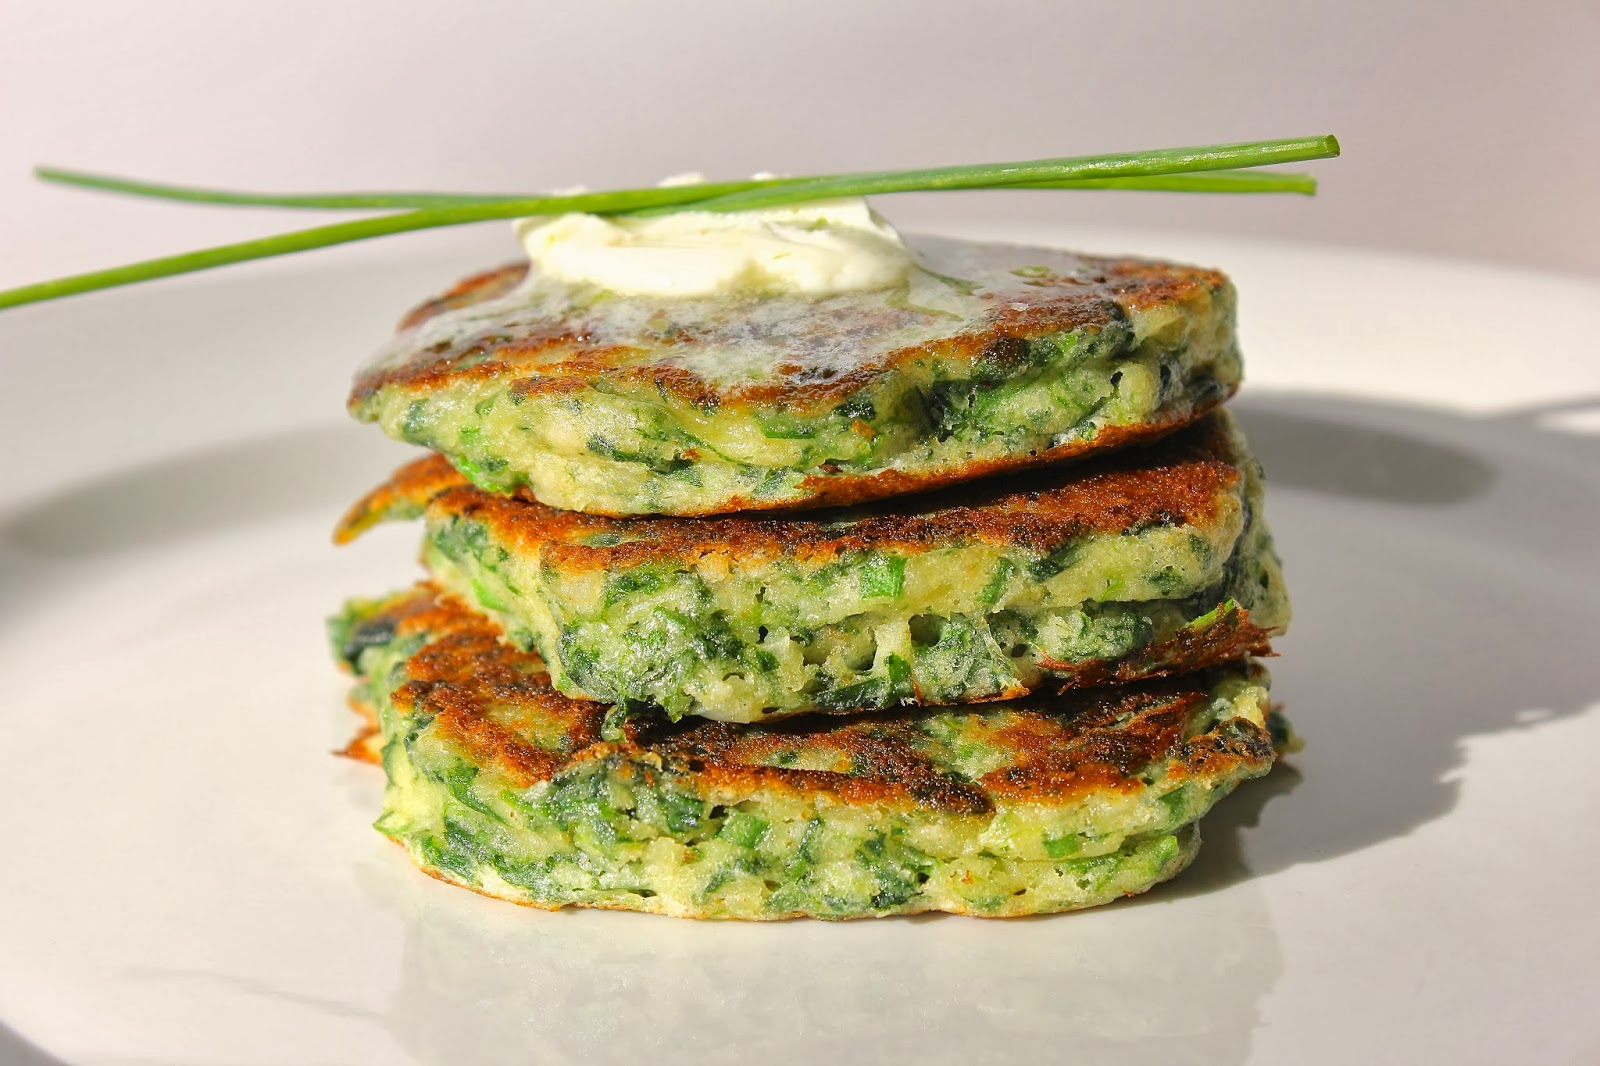 Coconut cilantro savory pancake ayurvedic diet recipes for Ayurvedic cuisine